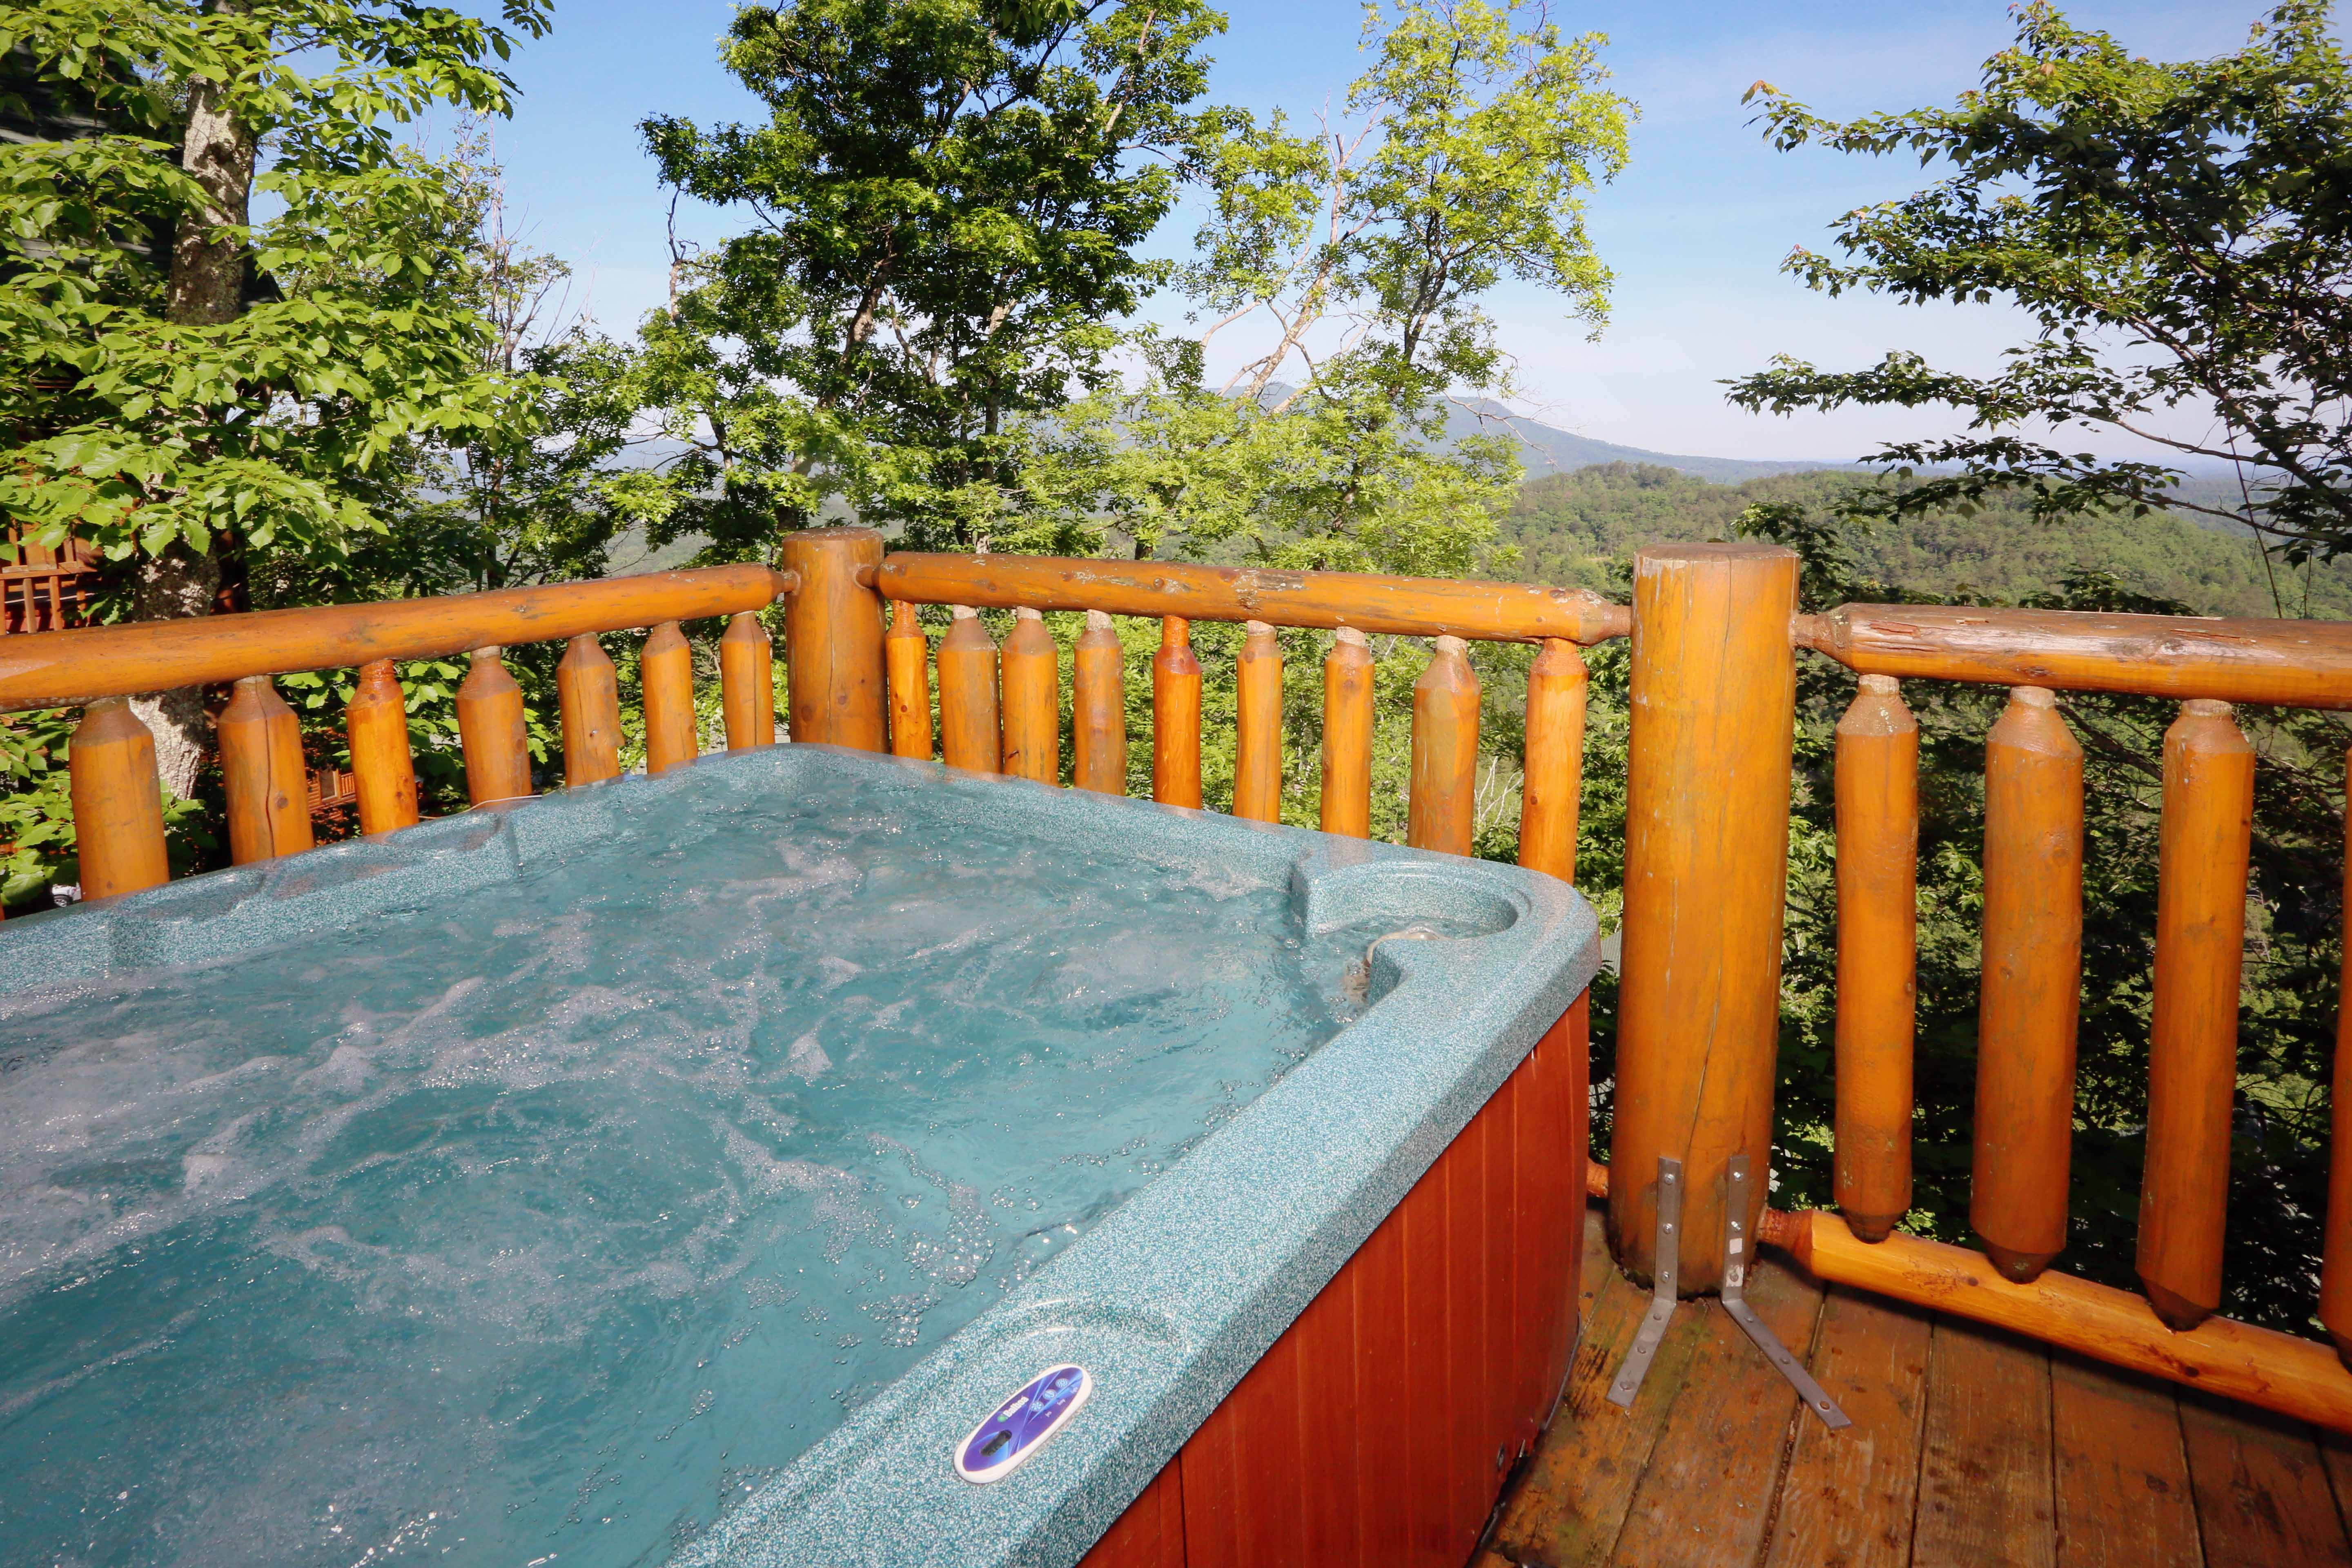 tennessee and falls park greats cabins indoor map of resort pool water awesome gatlinburg in with resorts